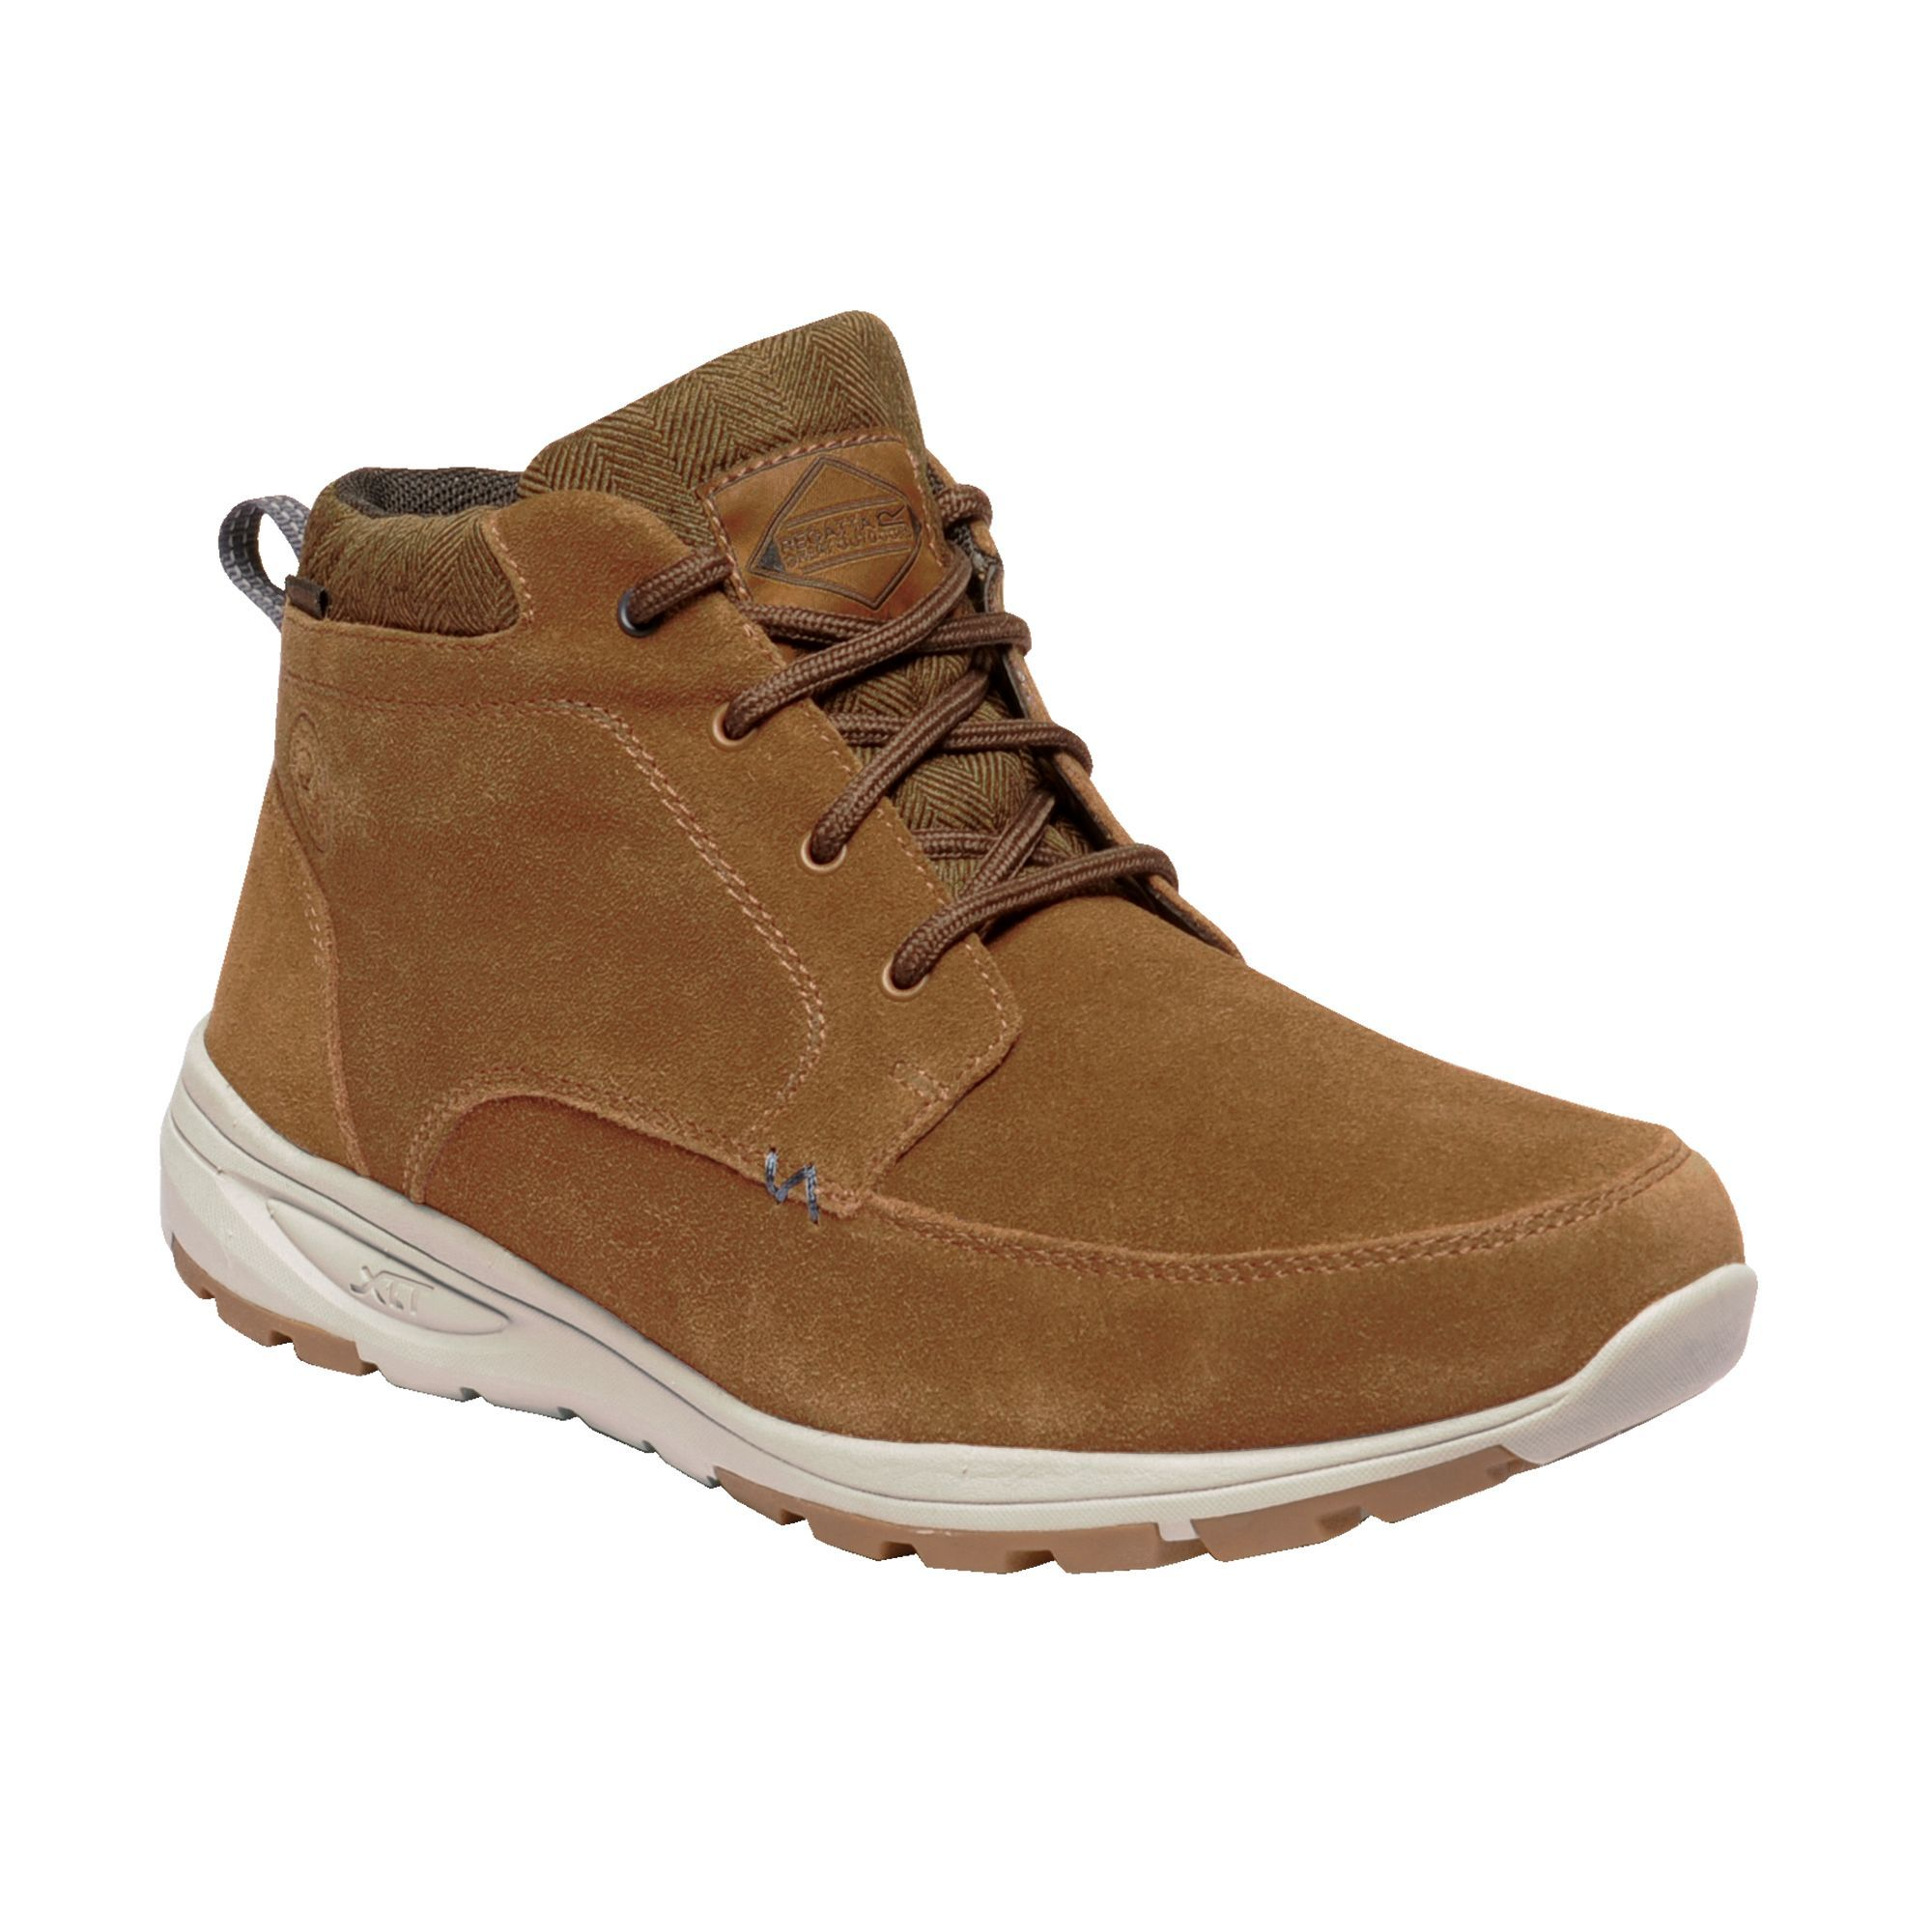 Regatta Great Outdoors Mens Marine Suede Leather Thermo Boots